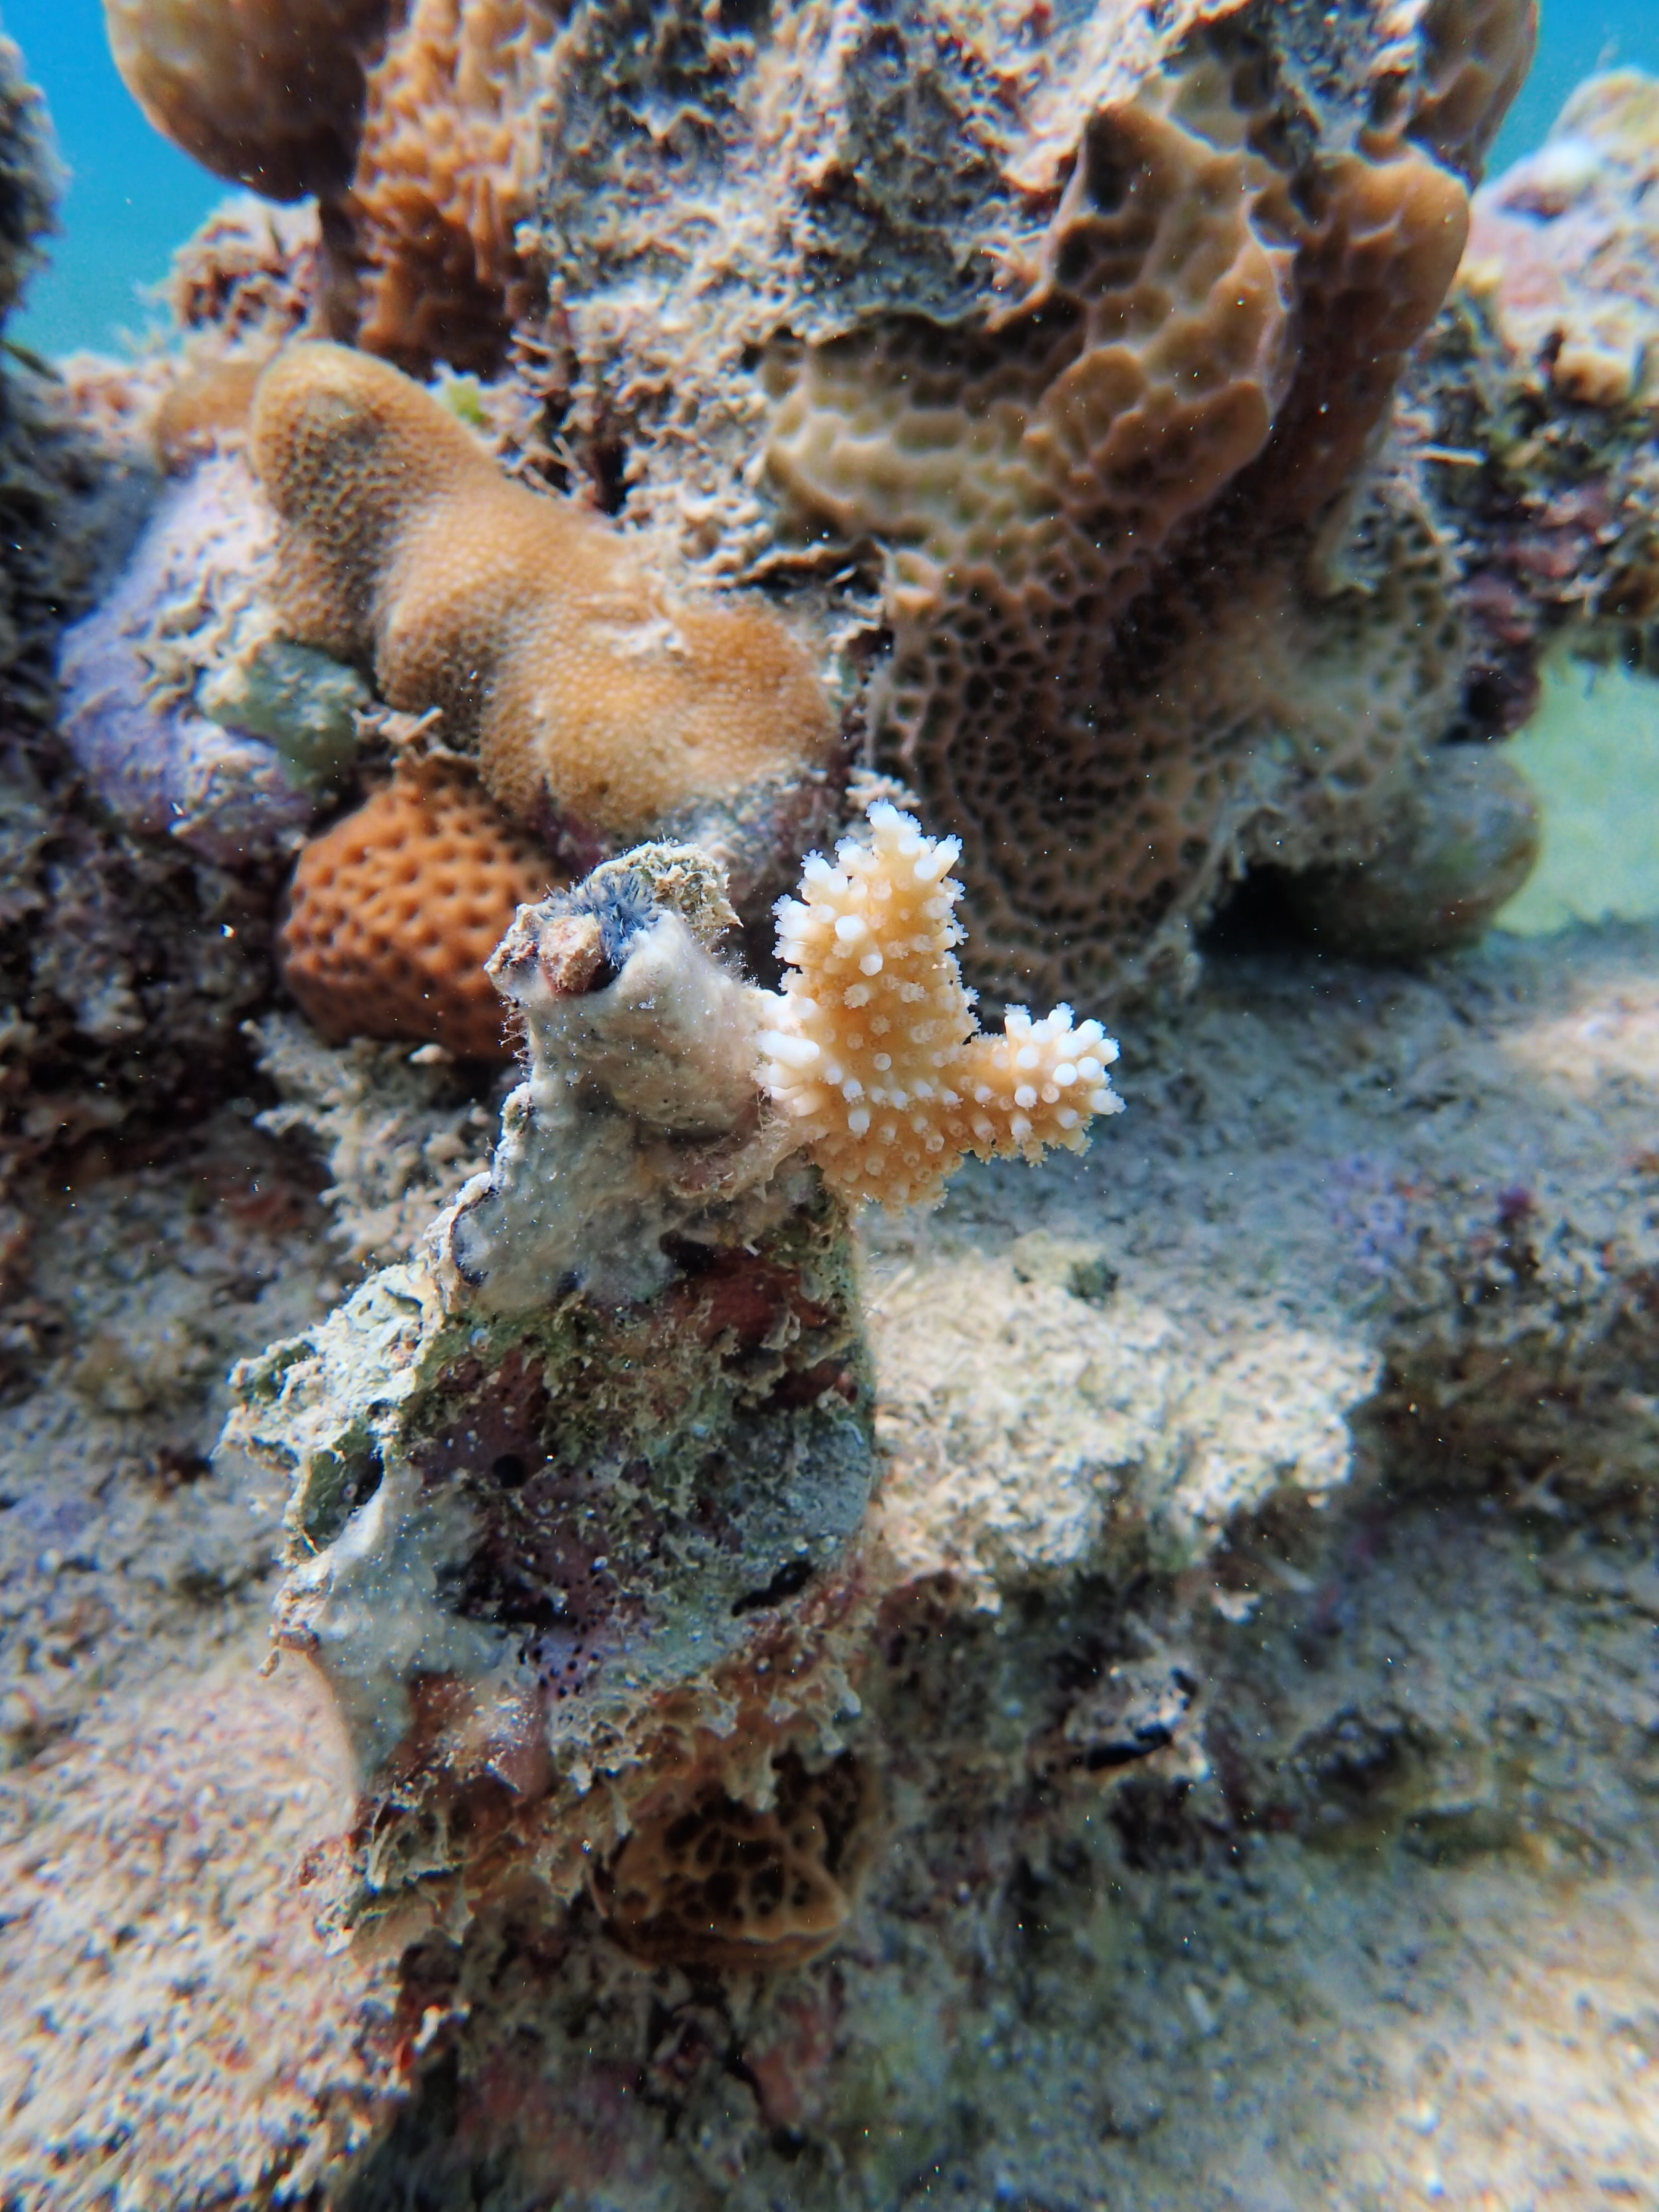 Young Staghorn coral transplant